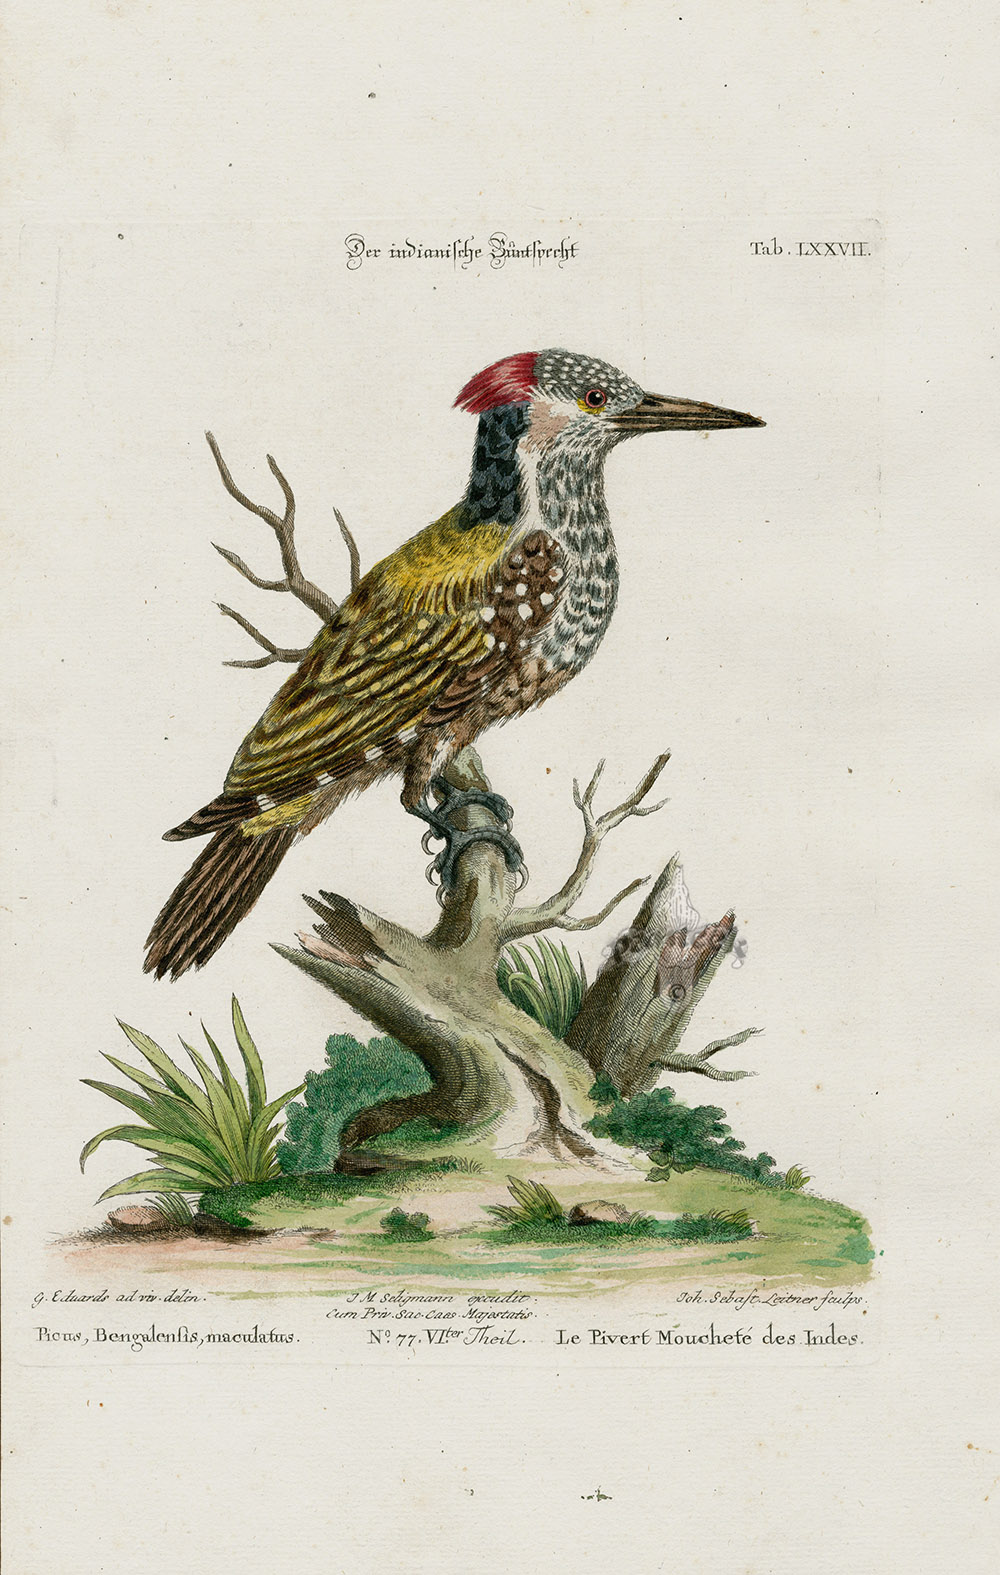 Woodpecker  Picus Bengalensis From George Edwards